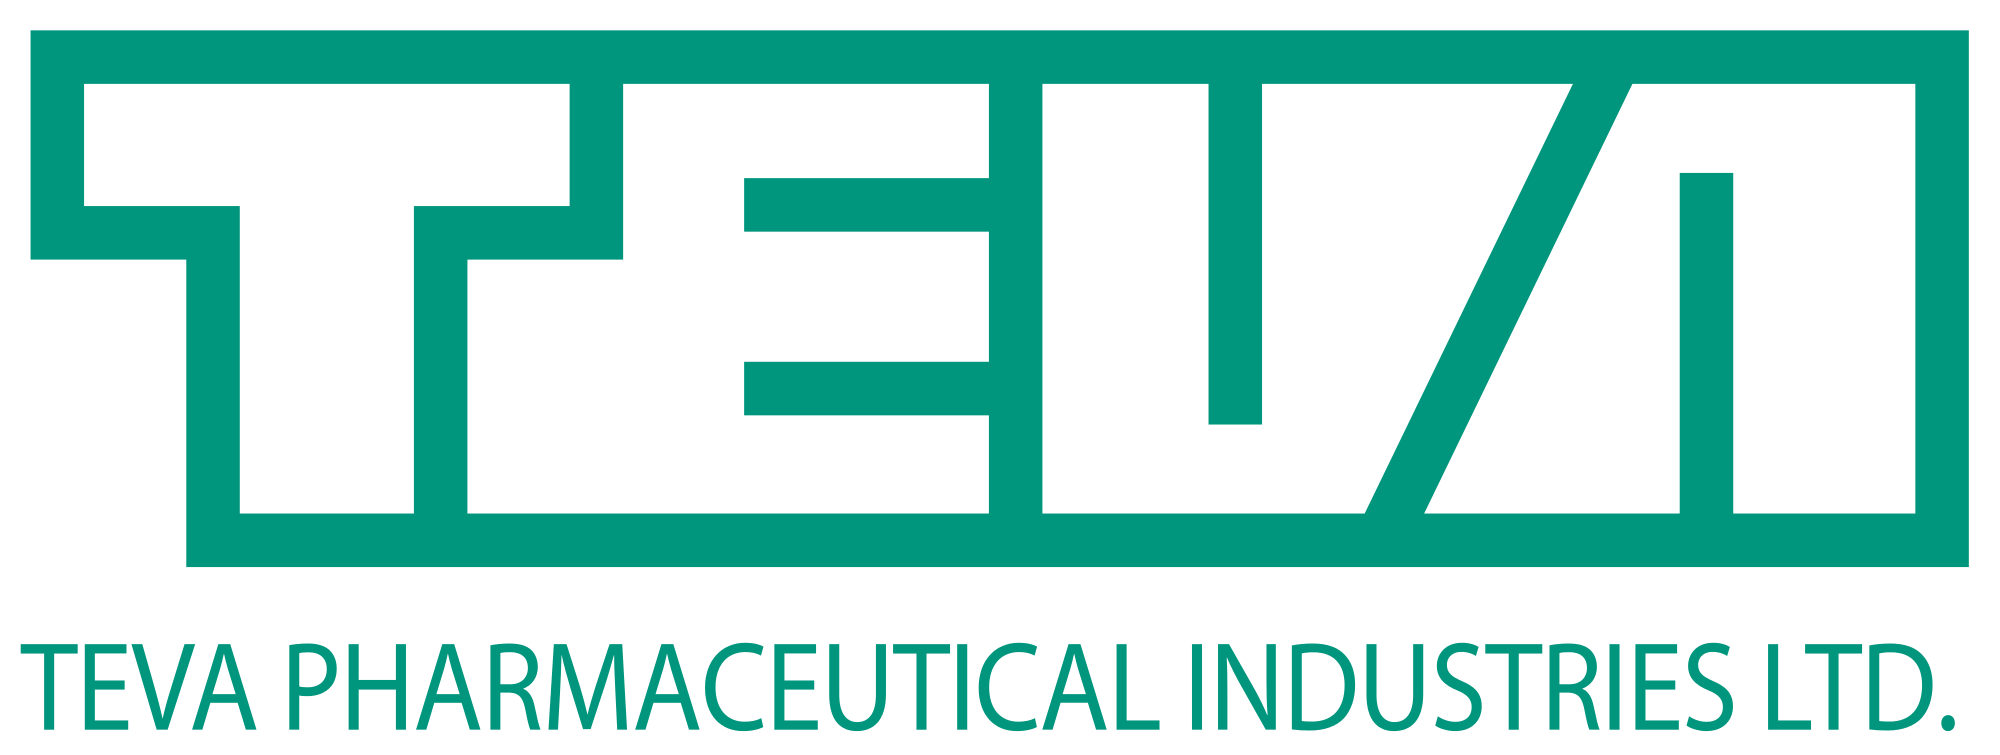 e46a03449051c2 Teva Pharmaceuticals Has Bottomed This Time - Teva Pharmaceutical ...